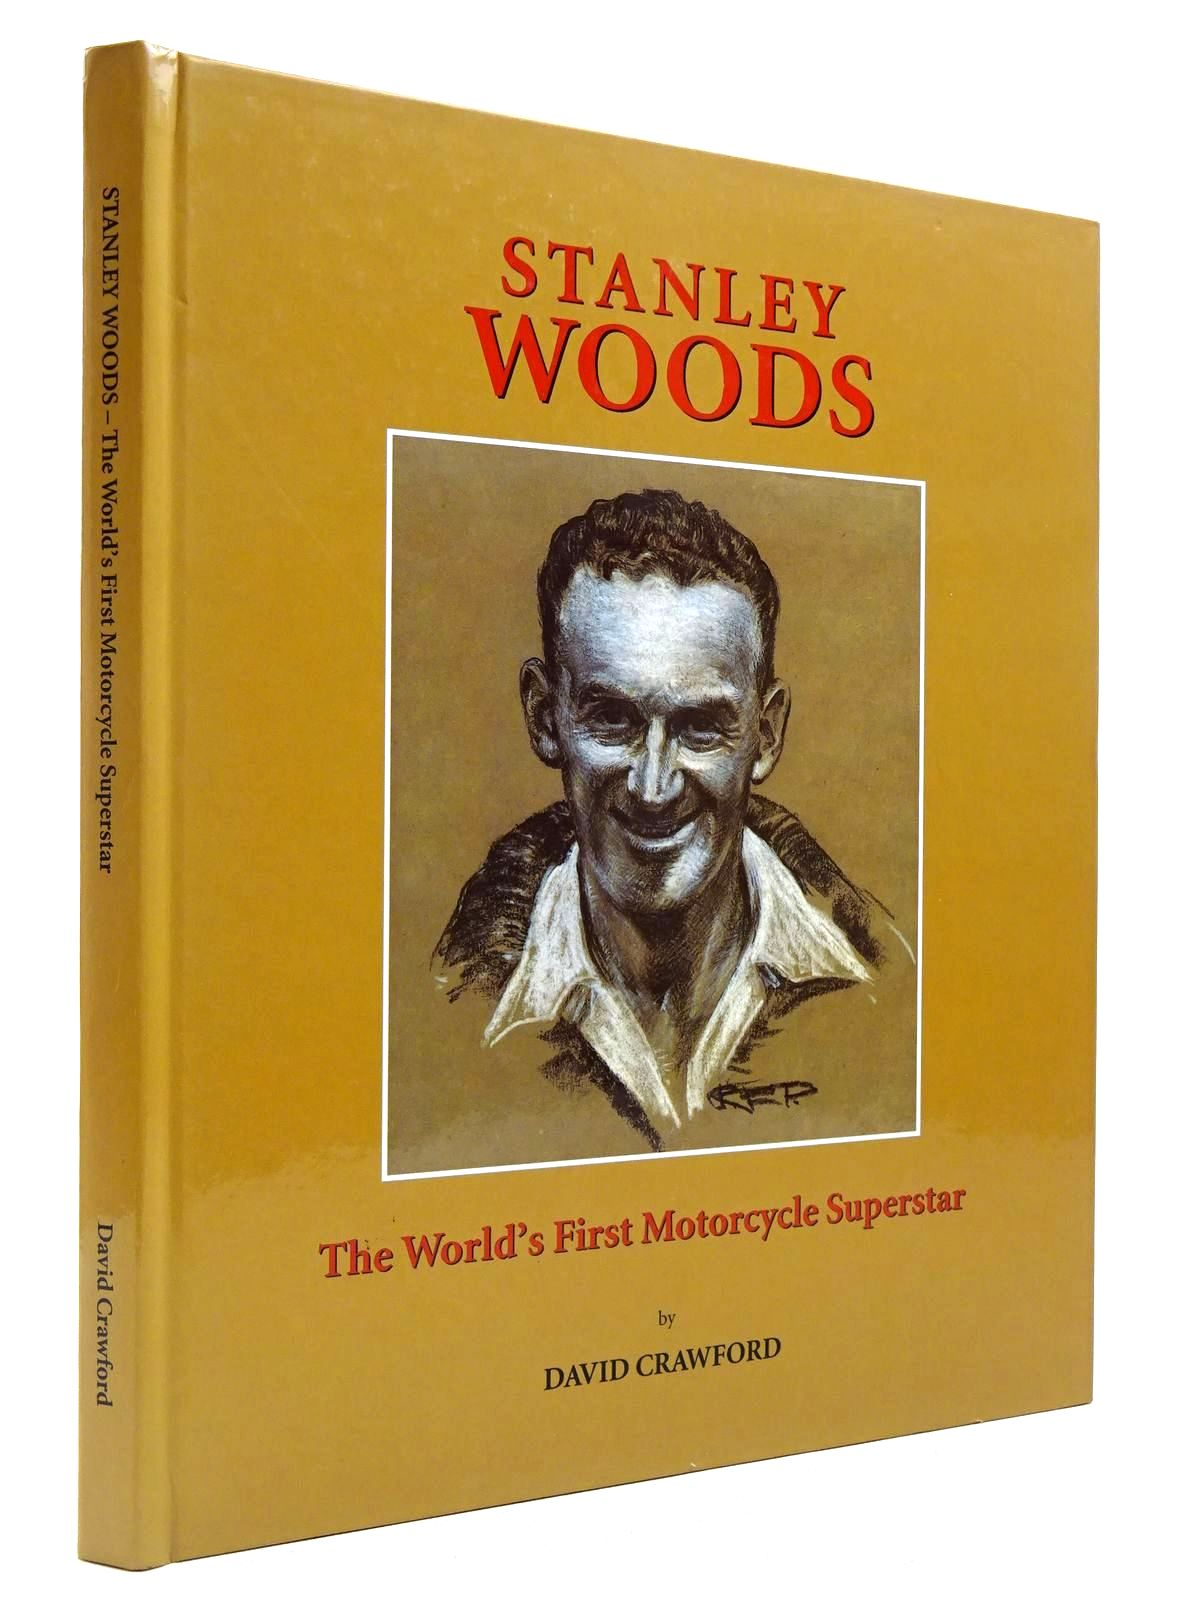 Photo of STANLEY WOODS THE WORLD'S FIRST MOTORCYCLE SUPERSTAR written by Crawford, David published by David Crawford (STOCK CODE: 2128952)  for sale by Stella & Rose's Books